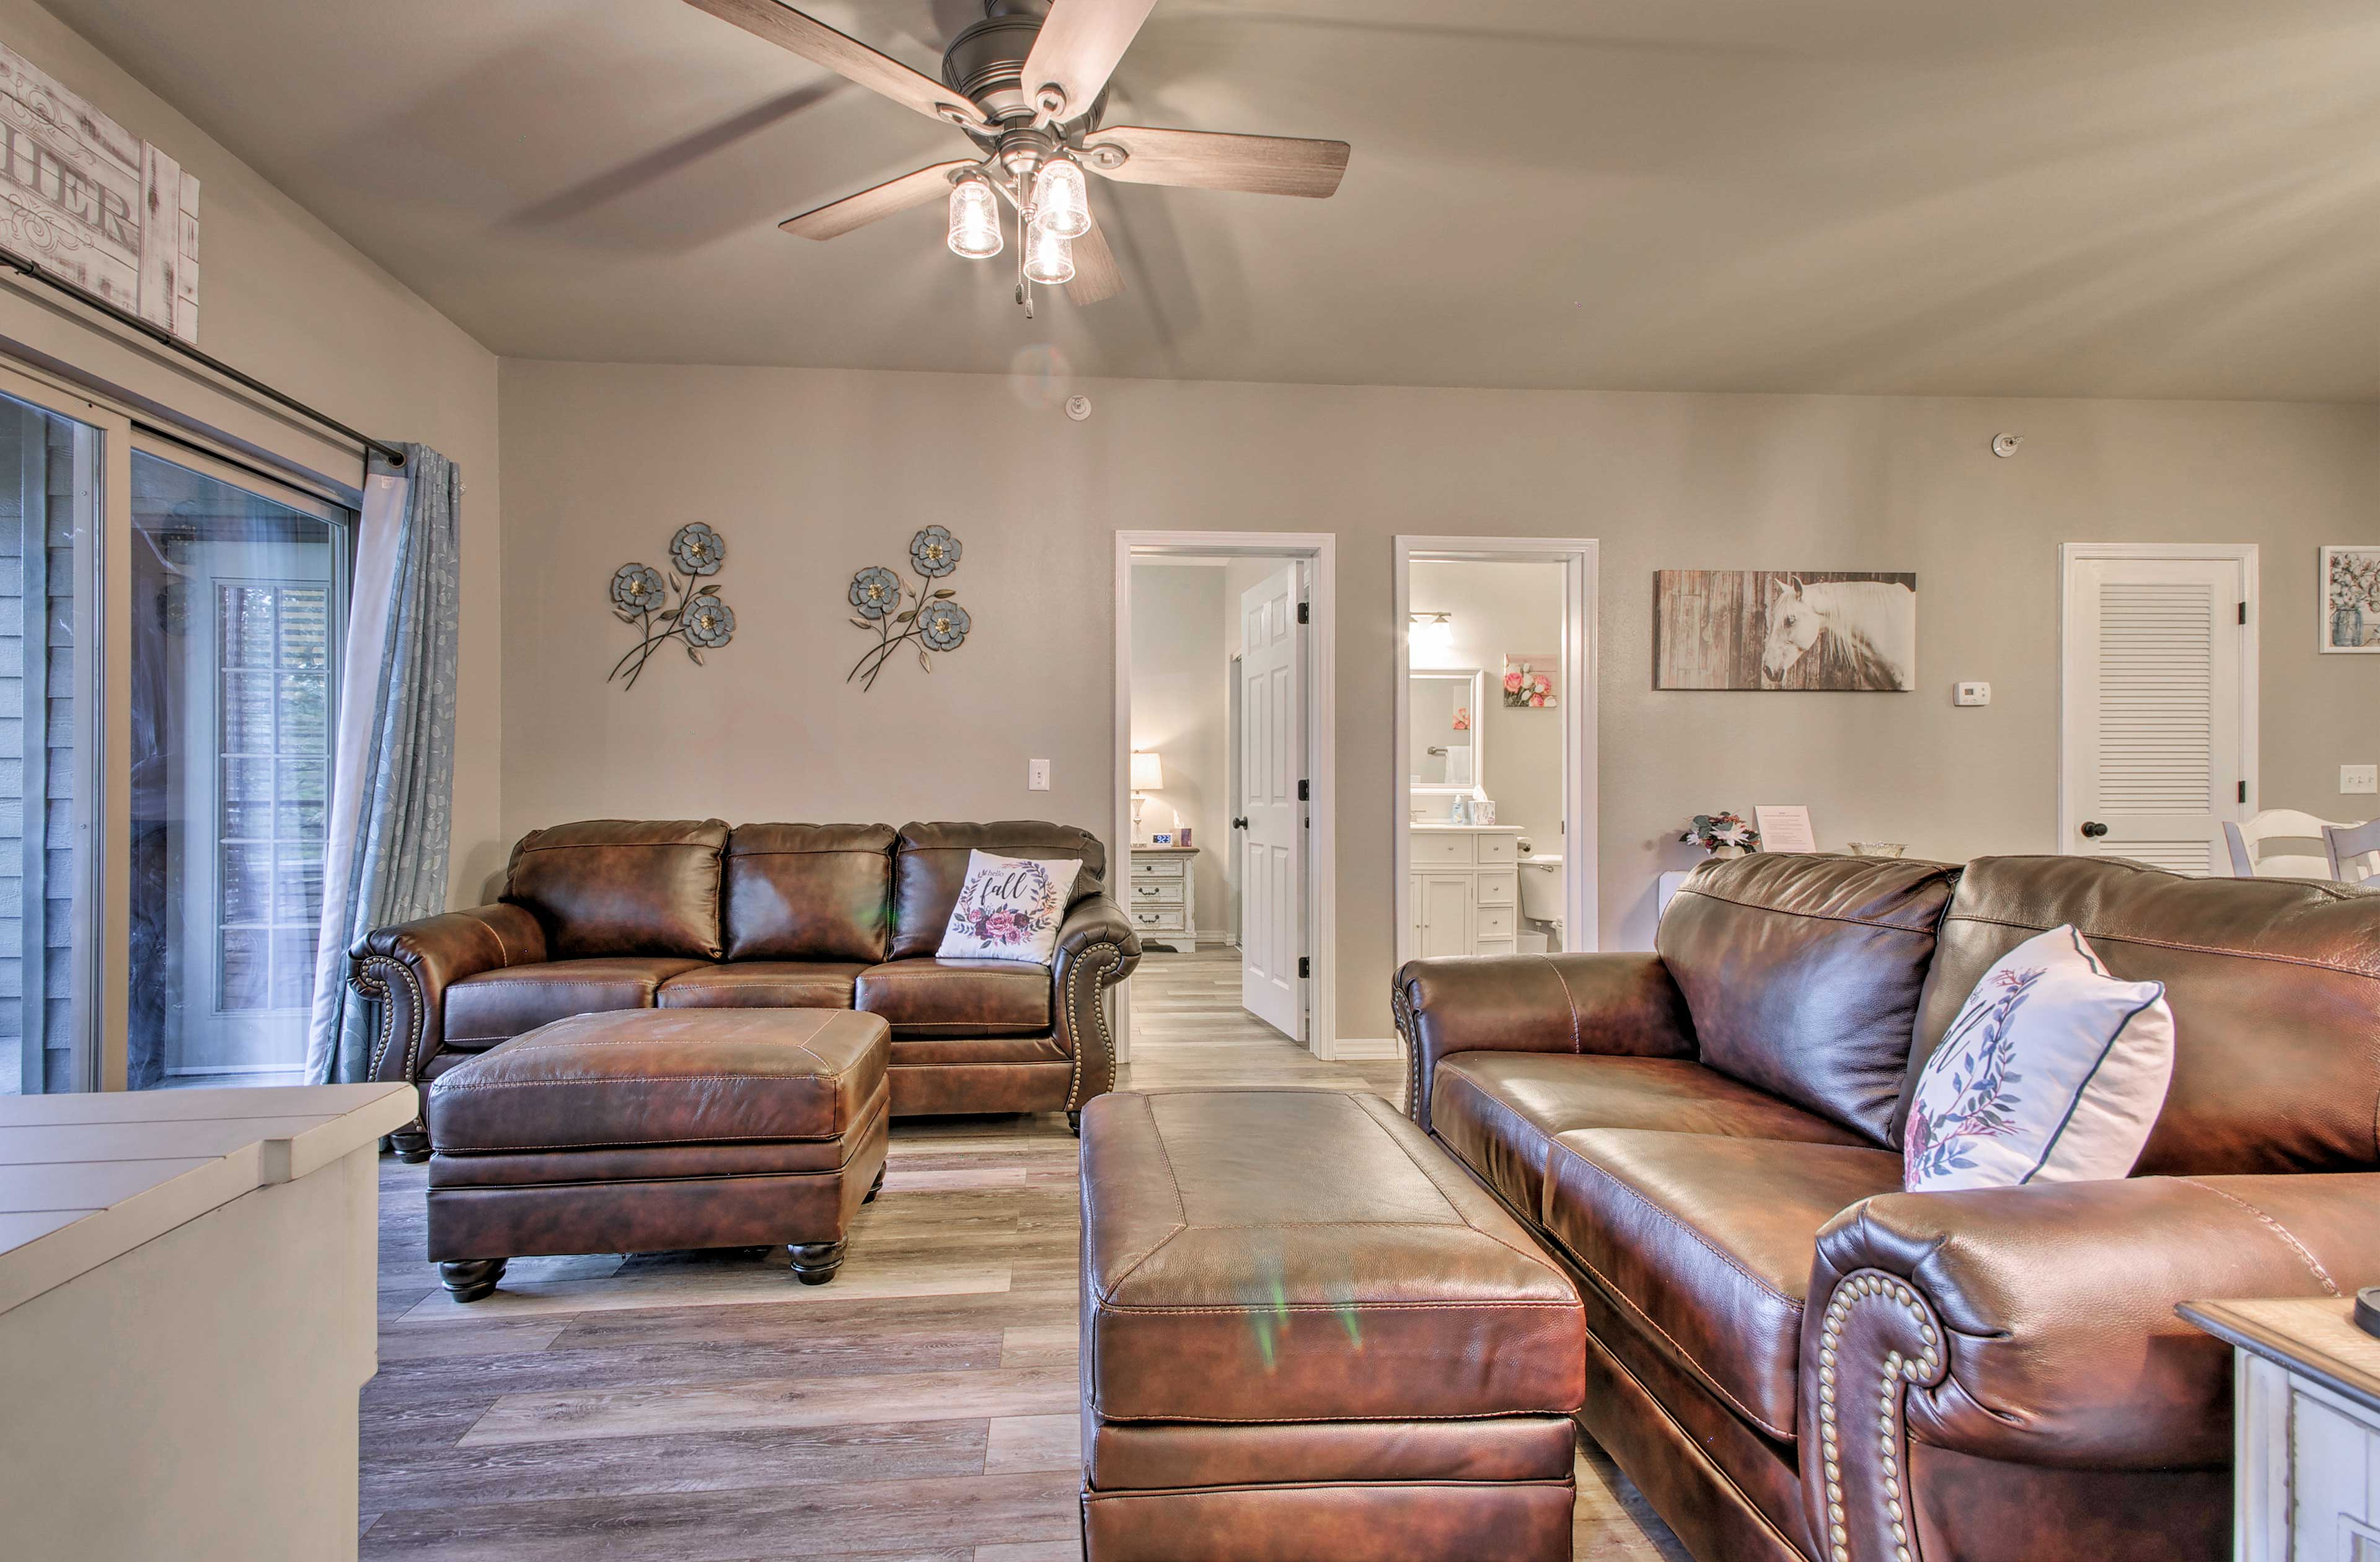 Sit and relax in the inviting living room.